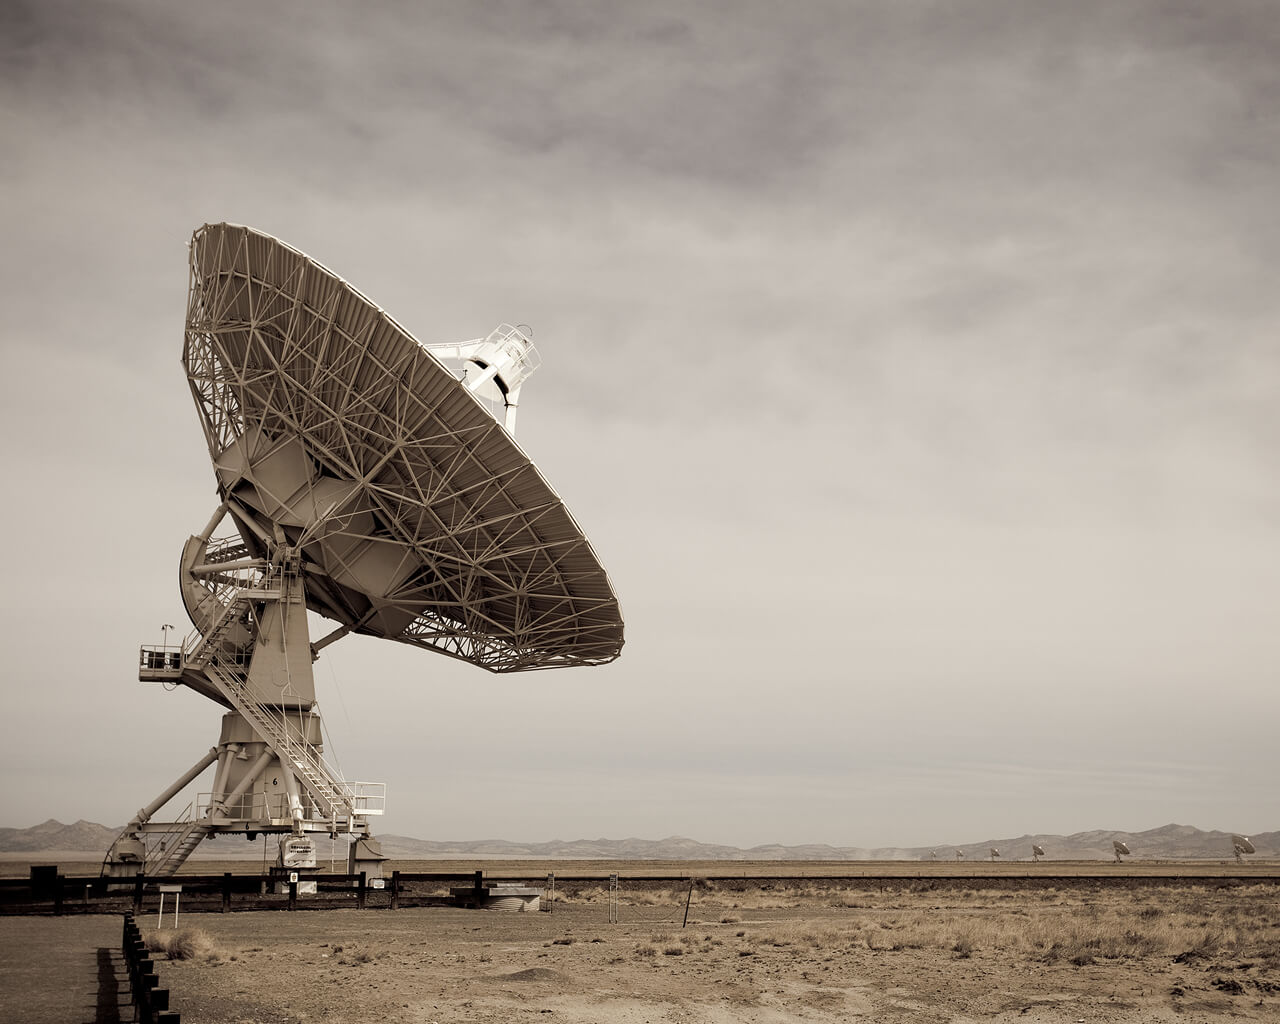 nasa satellite dish - photo #4